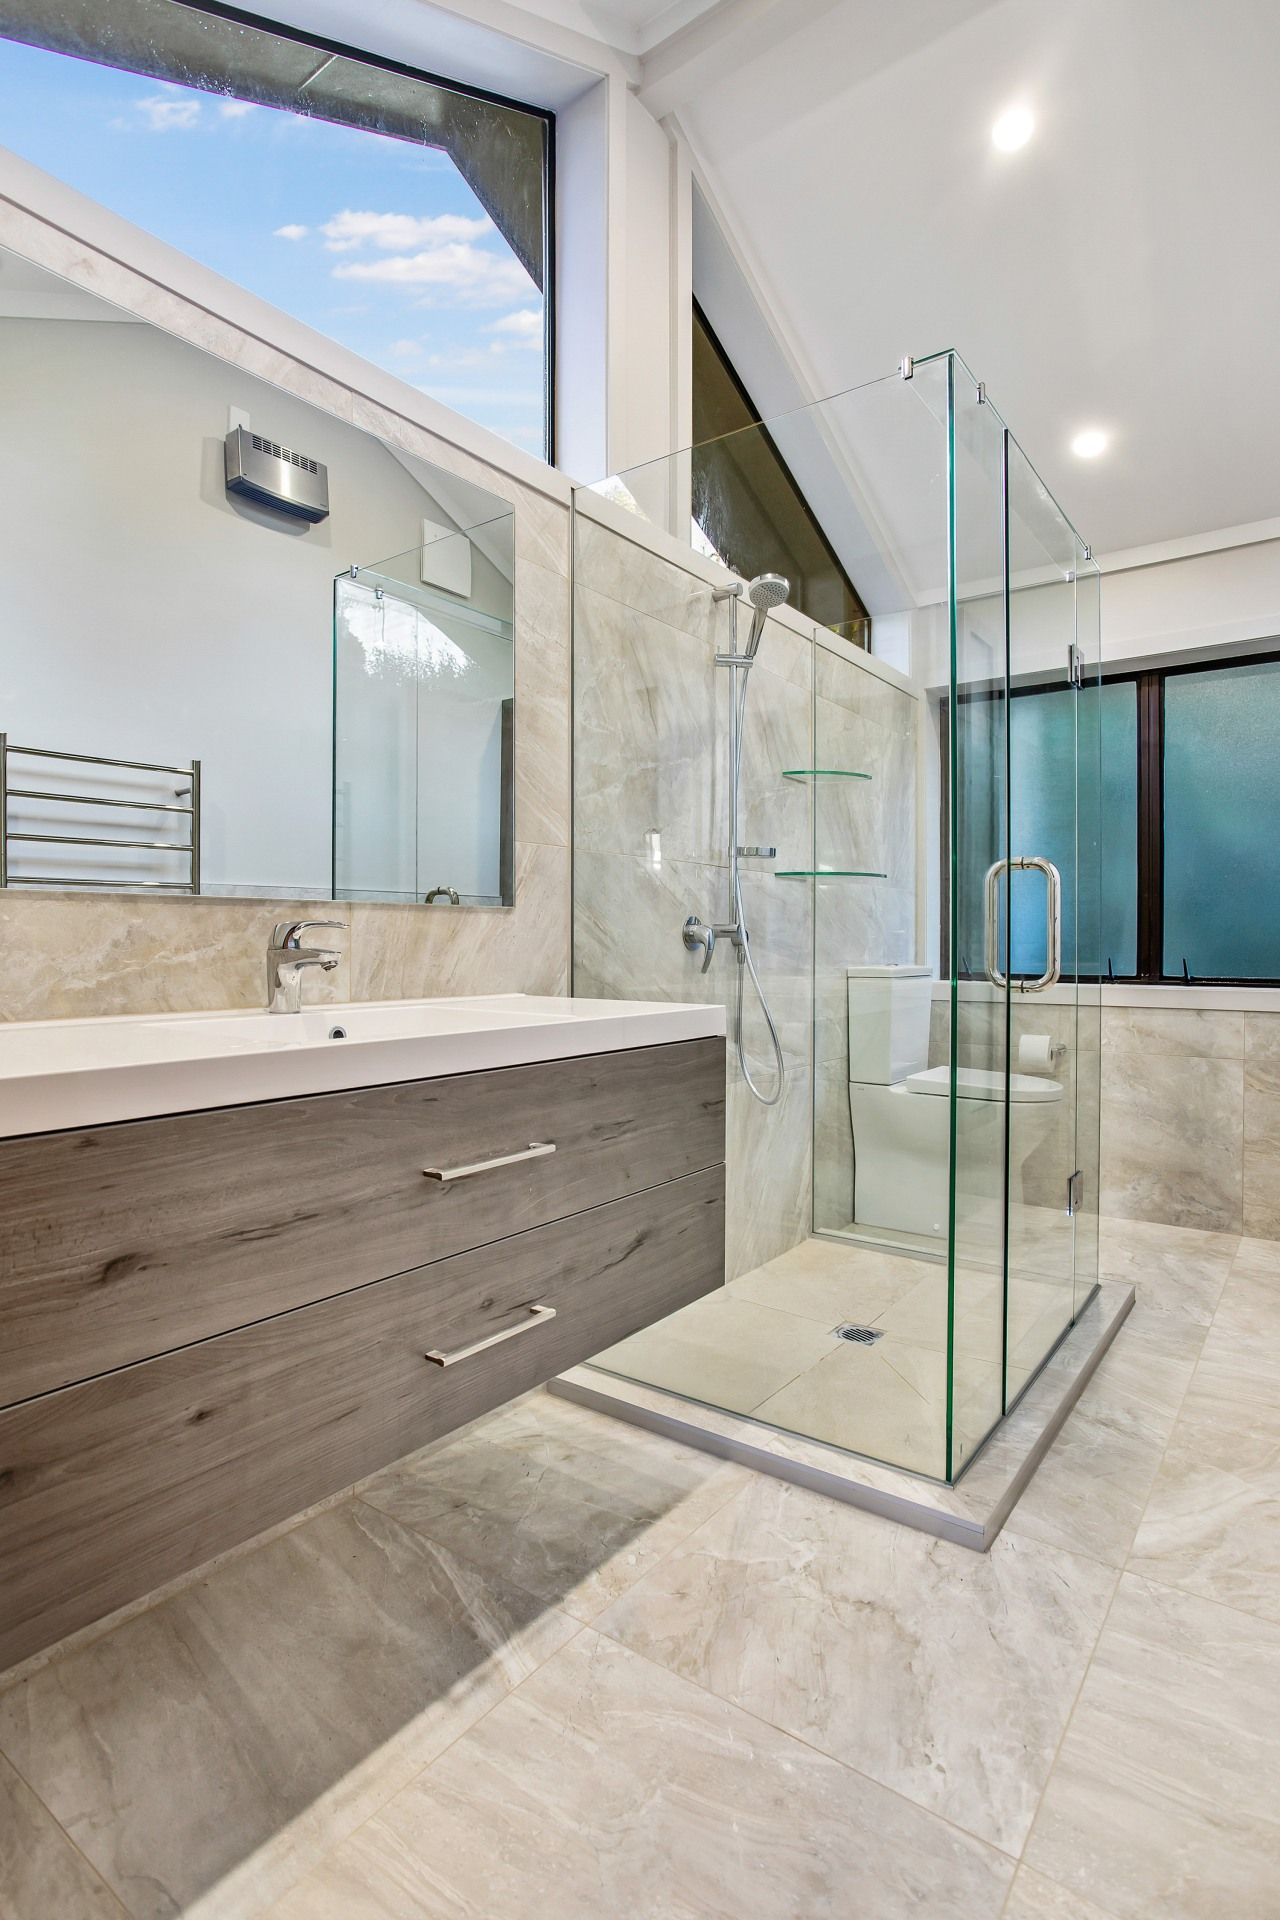 The cantilevered vanity and transparent glass shower stall apartment, architecture, bathroom, building, ceiling, daylighting, estate, floor, flooring, furniture, glass, home, house, interior design, property, real estate, room, space, tile, wall, window, gray